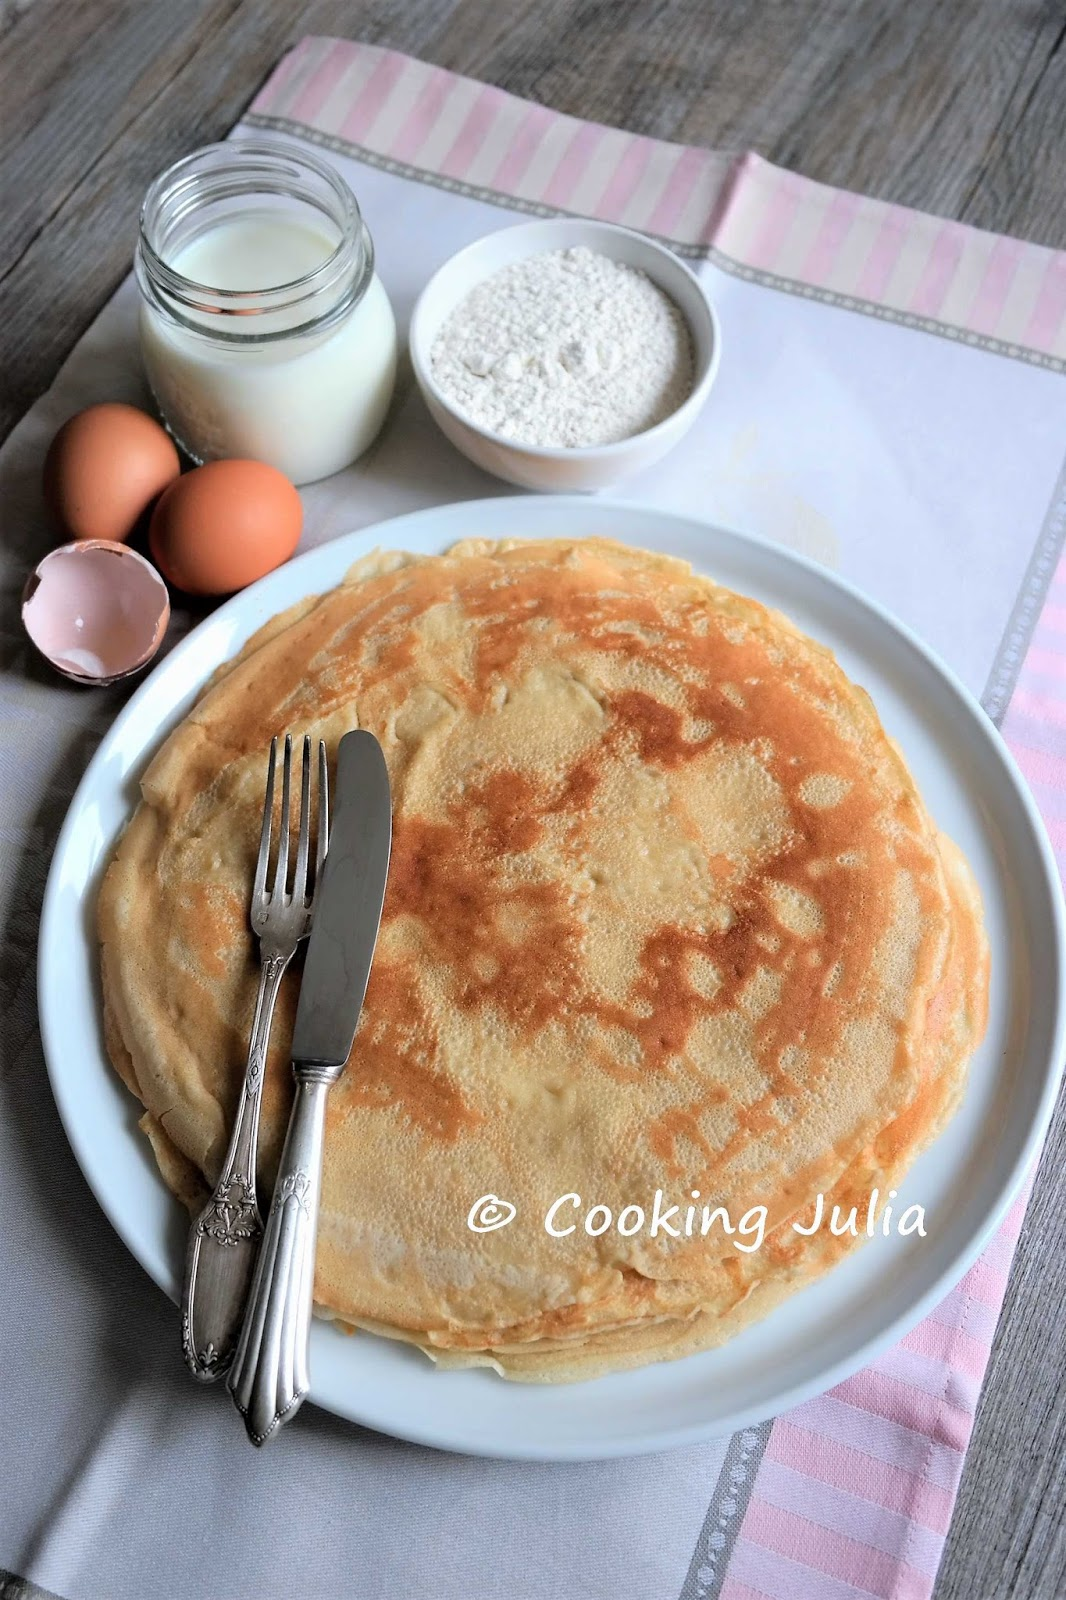 Cooking julia p te cr pes trois versions - Pate a crepes thermomix ...